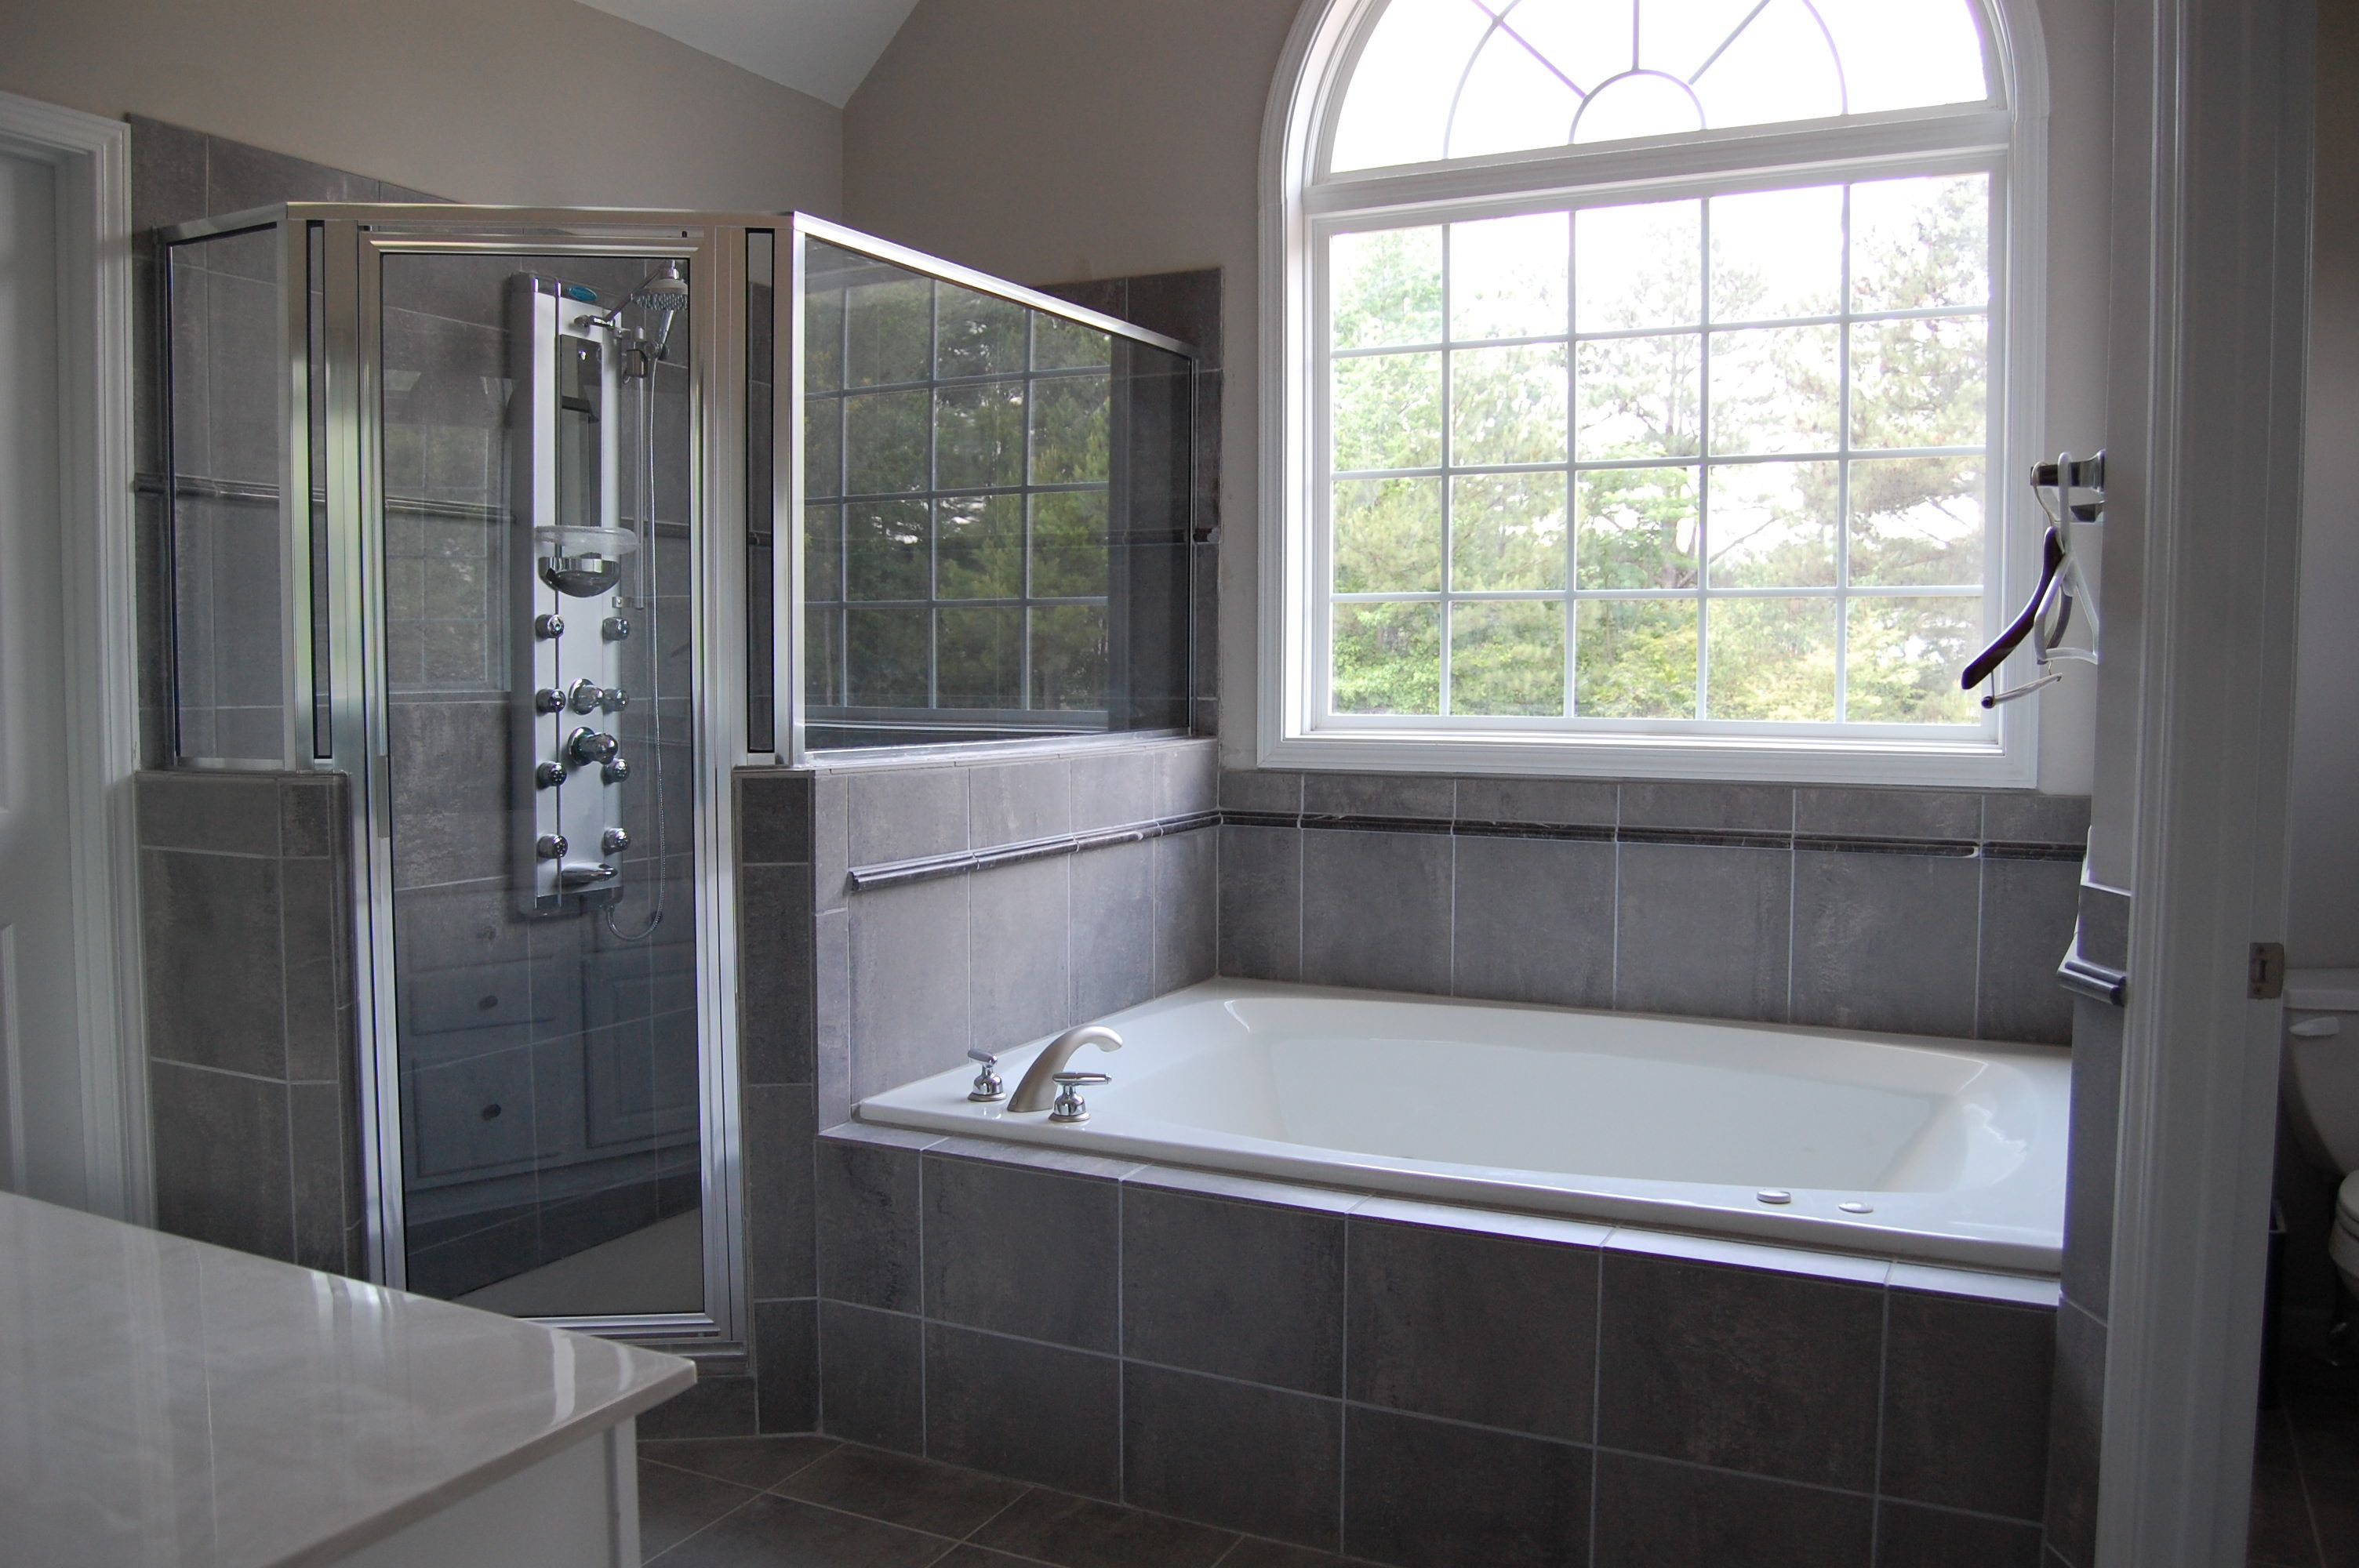 Bathroom Remodeling Home Depot Options Availableget Free Sizes - Bathroom renovation home depot